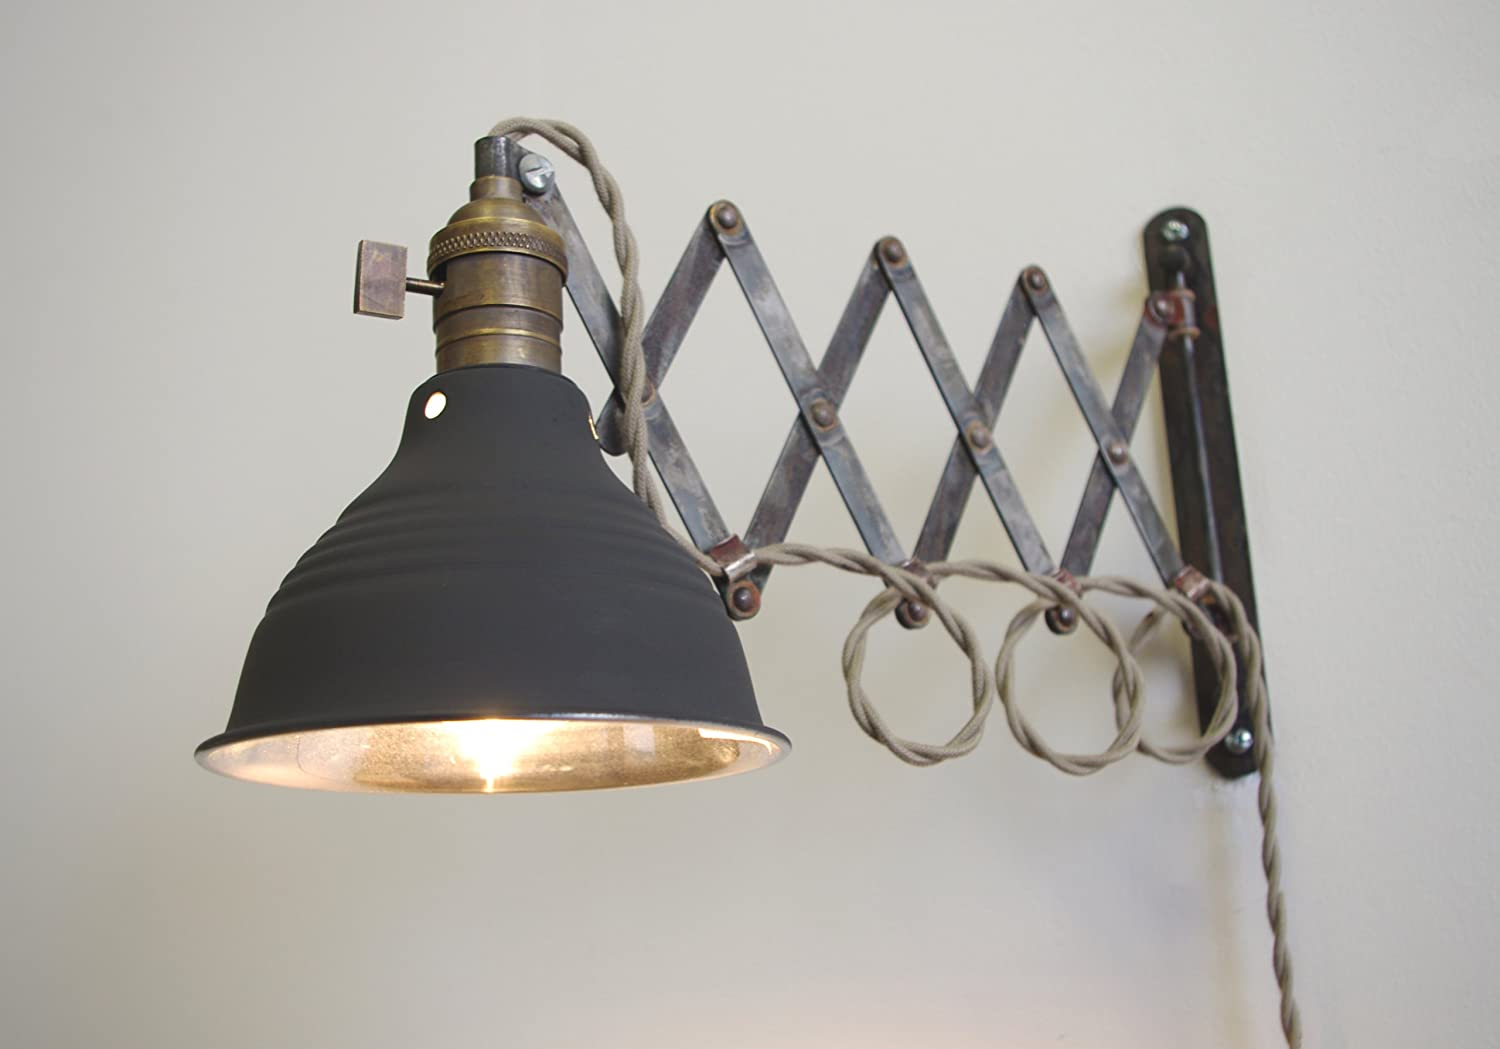 lighting on wall. Scissor Extention Accordion Wall Lamp - Antiqued Patina Steam Punk Light Sconces Amazon.com Lighting On N